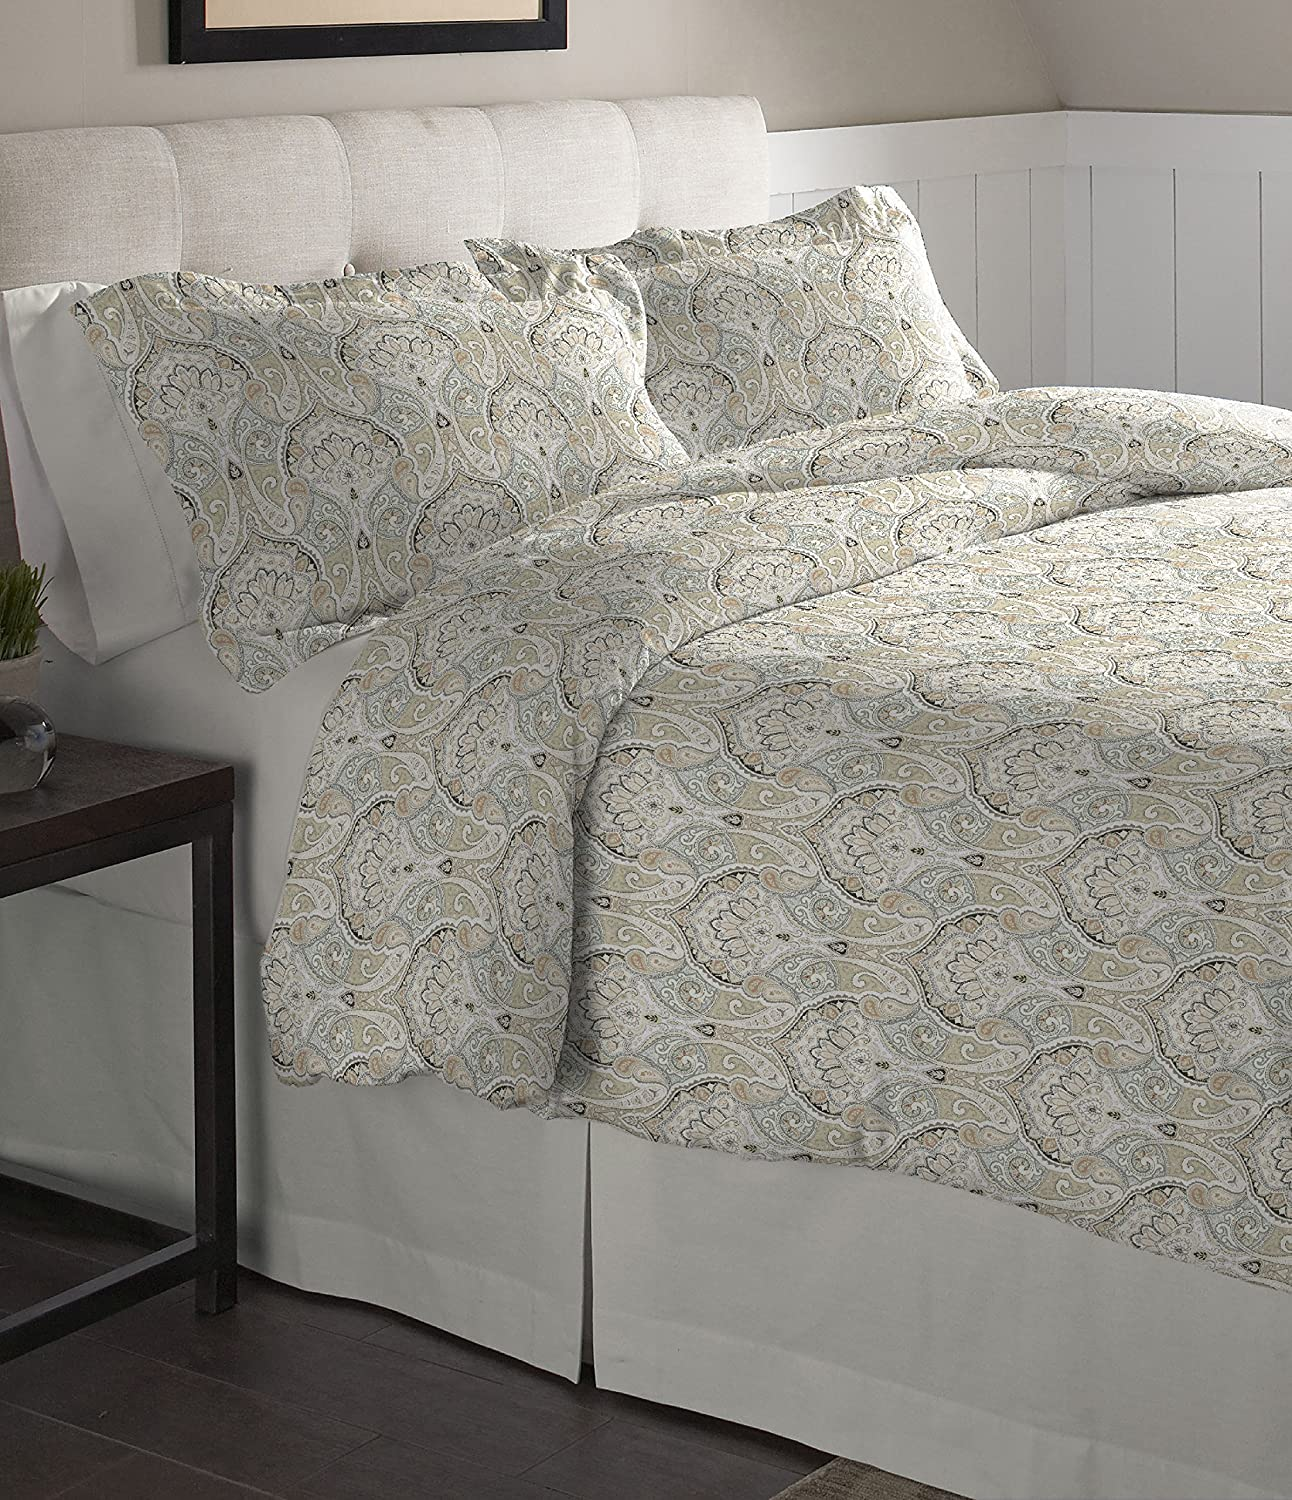 Pointehaven Flannel Oversized Duvet Set, Full/Queen, Paisley